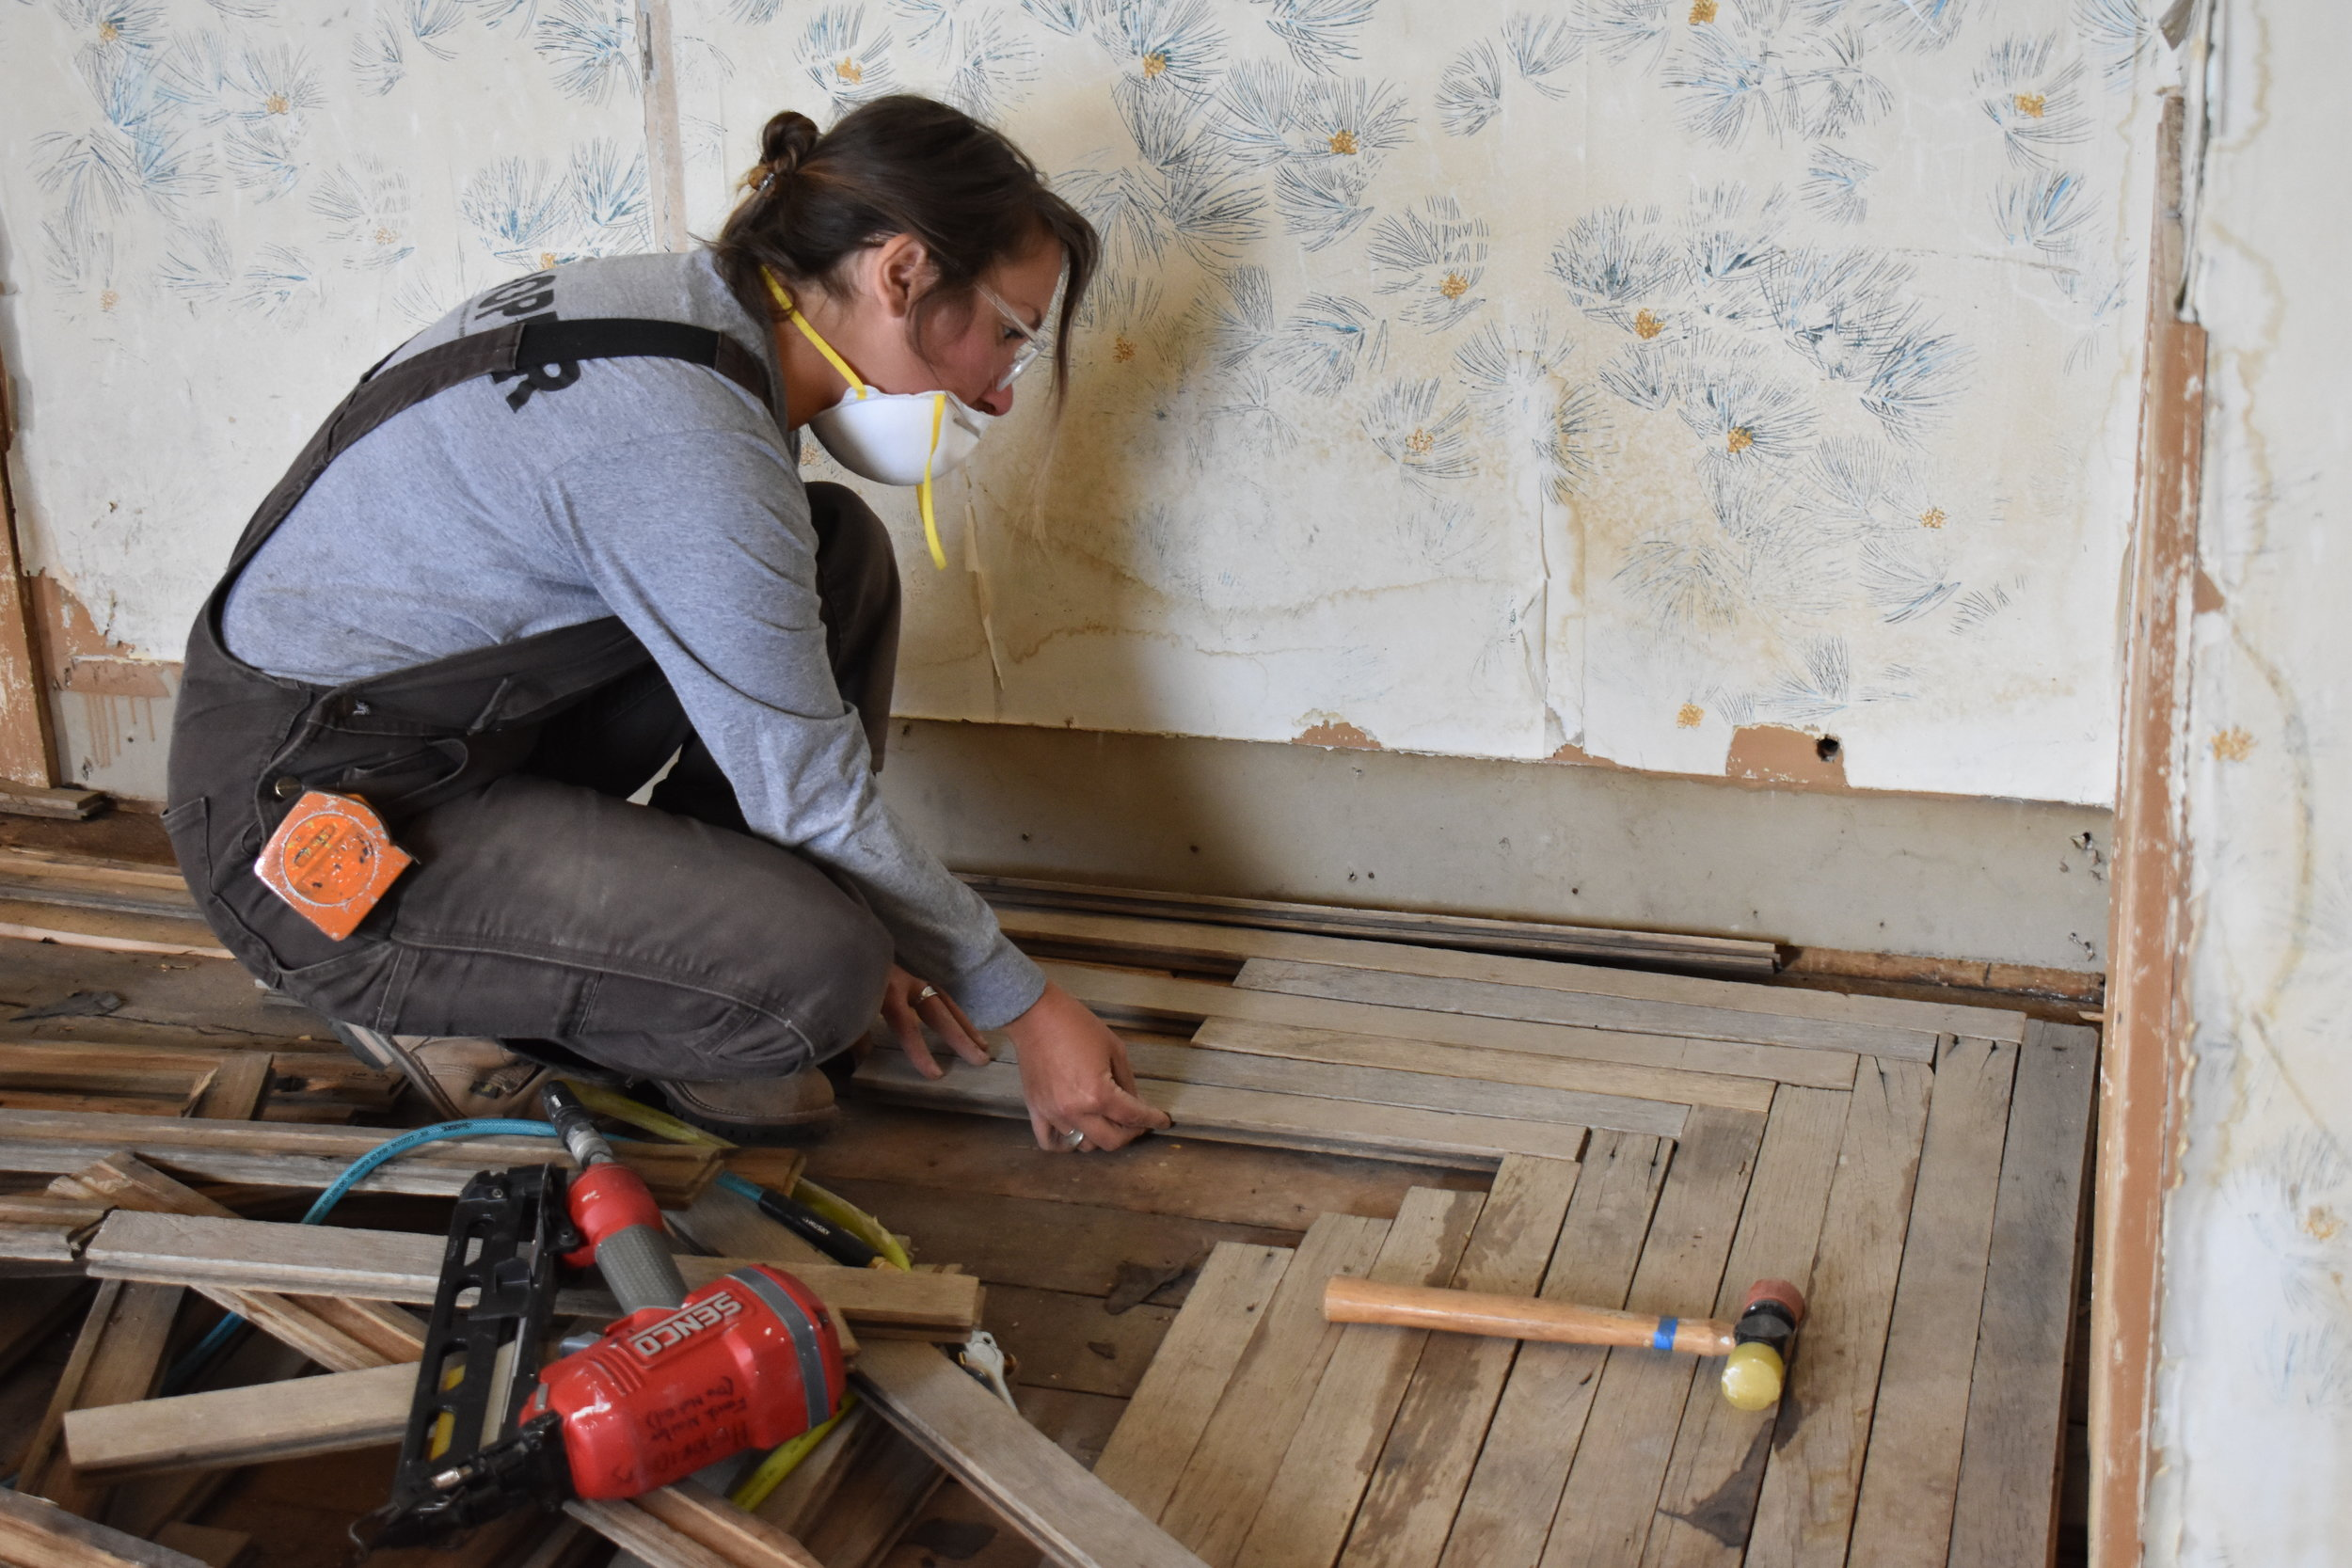 Molly Greenhouse, crew leader from HistoriCorps, works inside the Bodie Railway Office replacing original pieces of the oak flooring during 2019. Photo by Chris Spiller